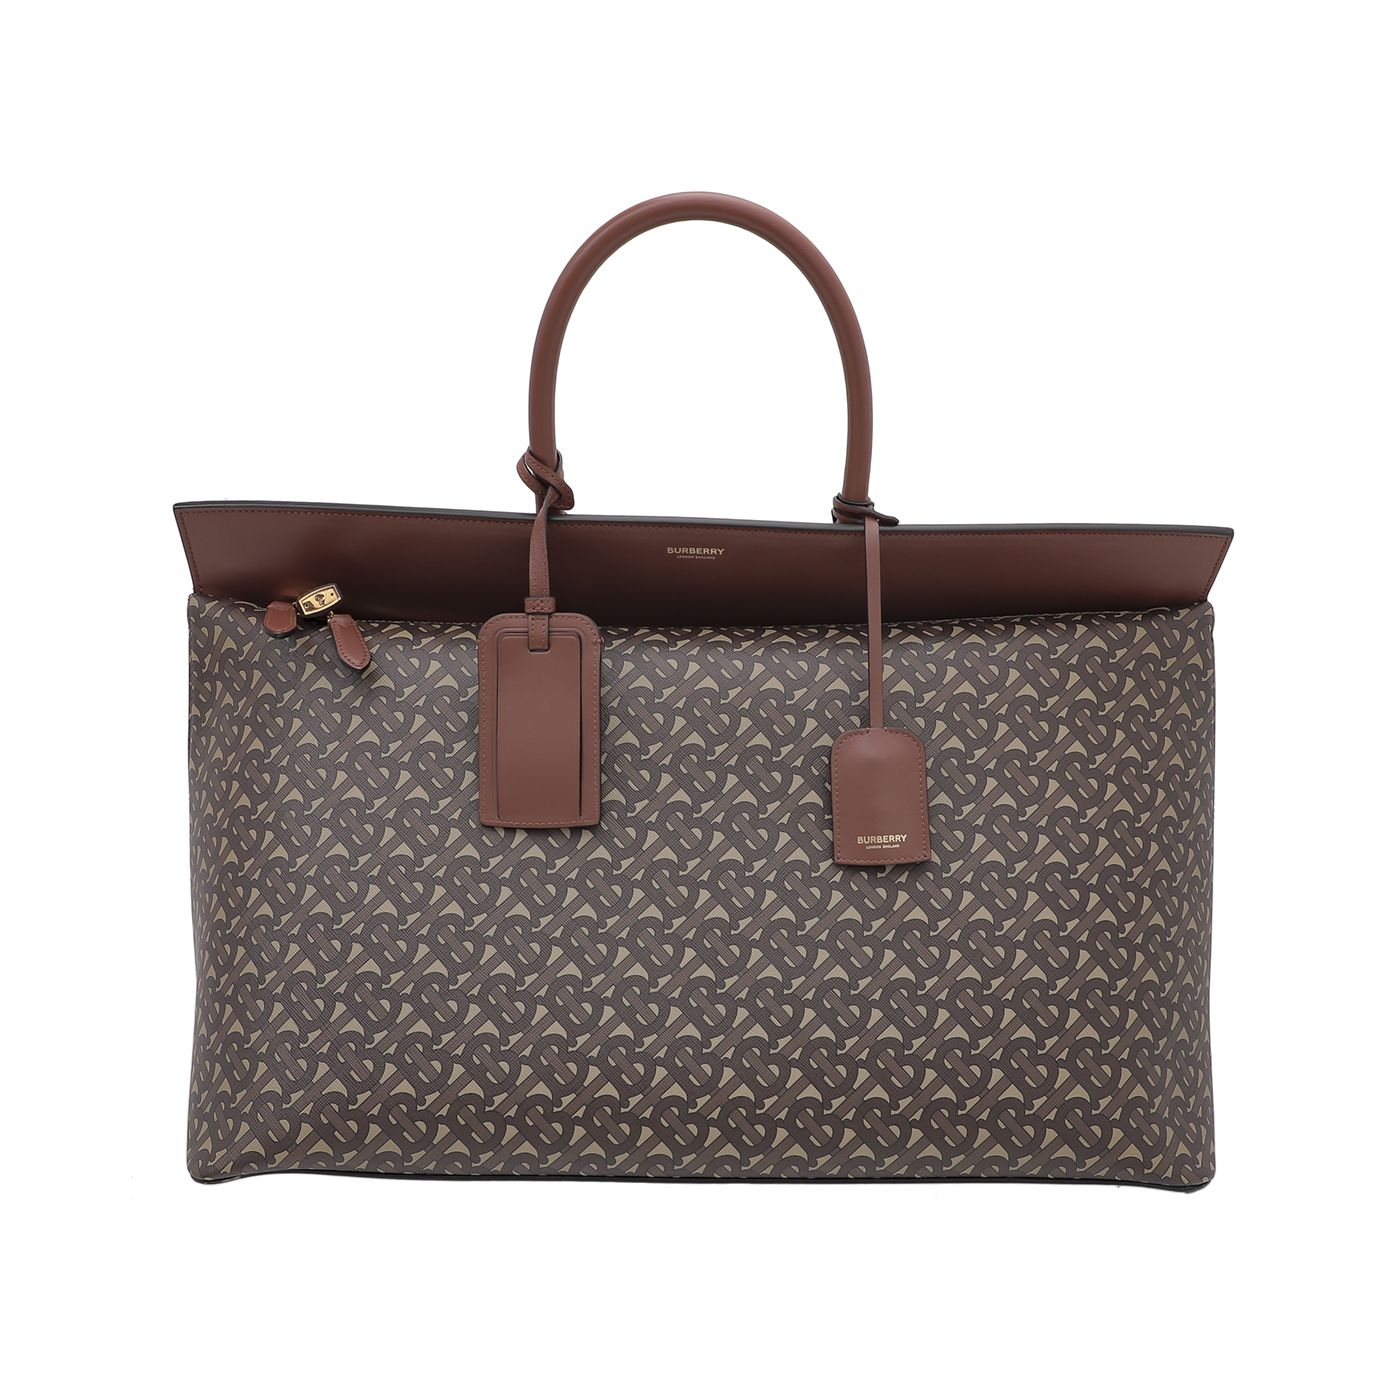 Burberry Brown Monogram Society Top Handle Bag